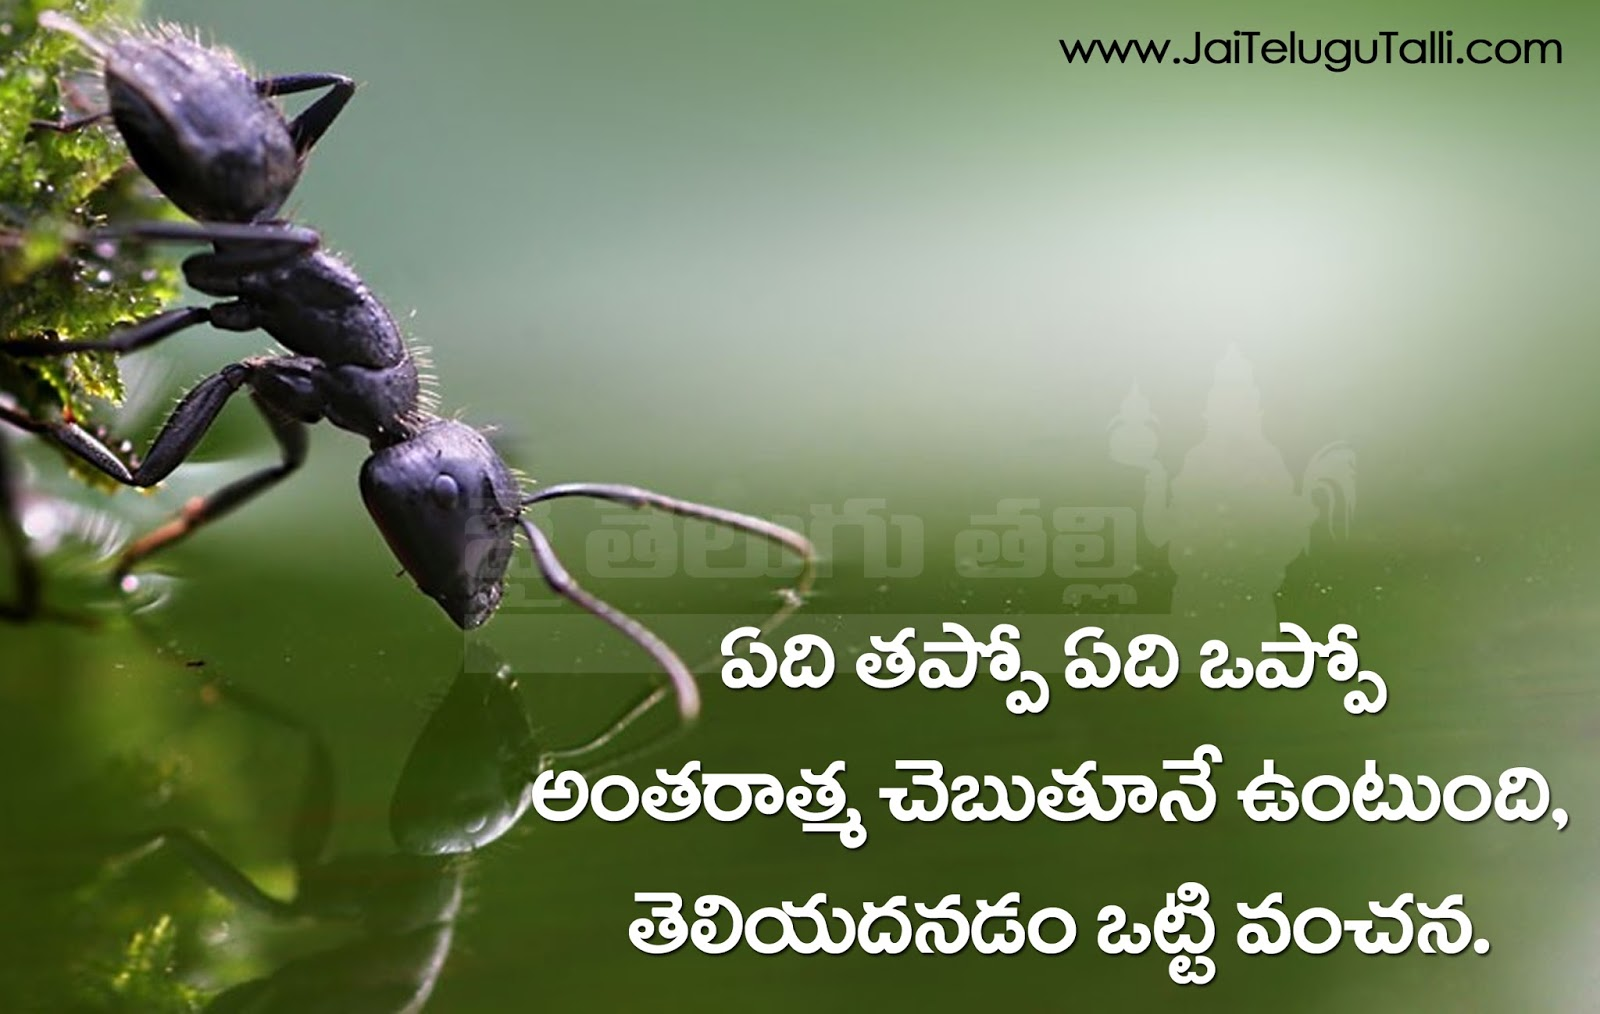 The Best Telugu Quotes On Life With Images Hd Quotes On Newstesmasi